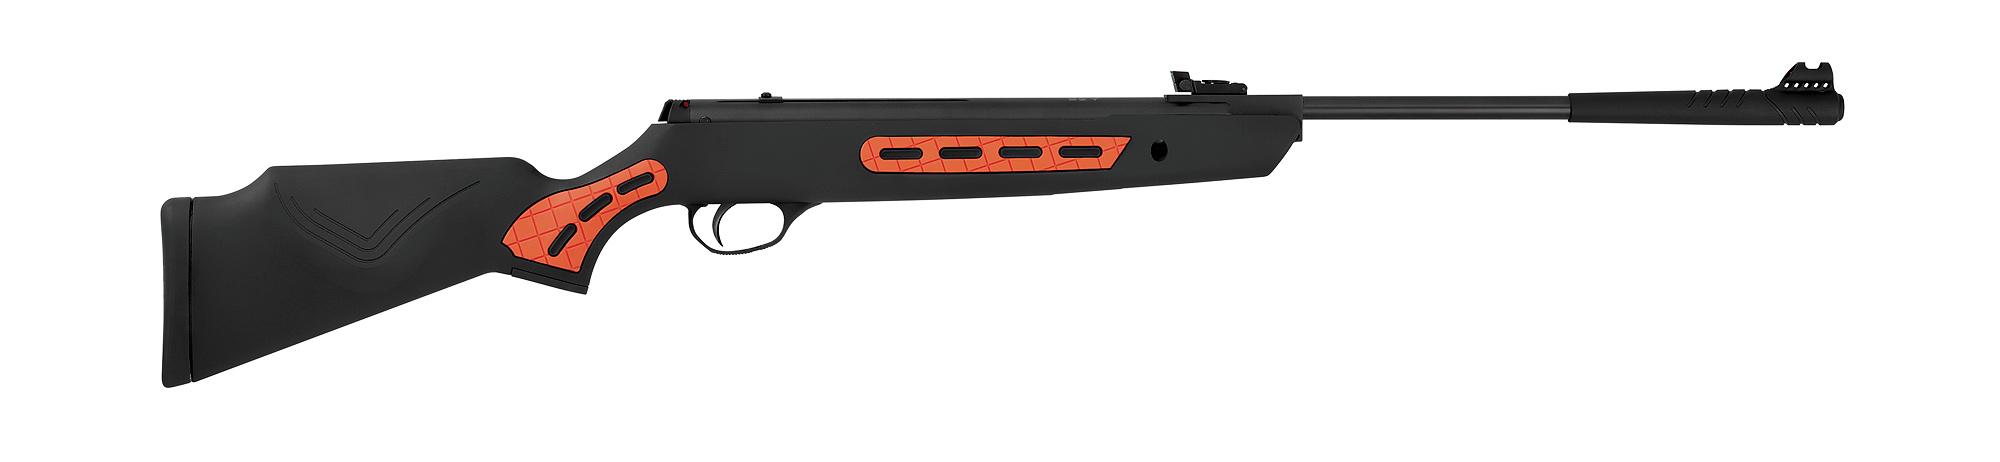 Hatsan Striker S Orange 4,5mm